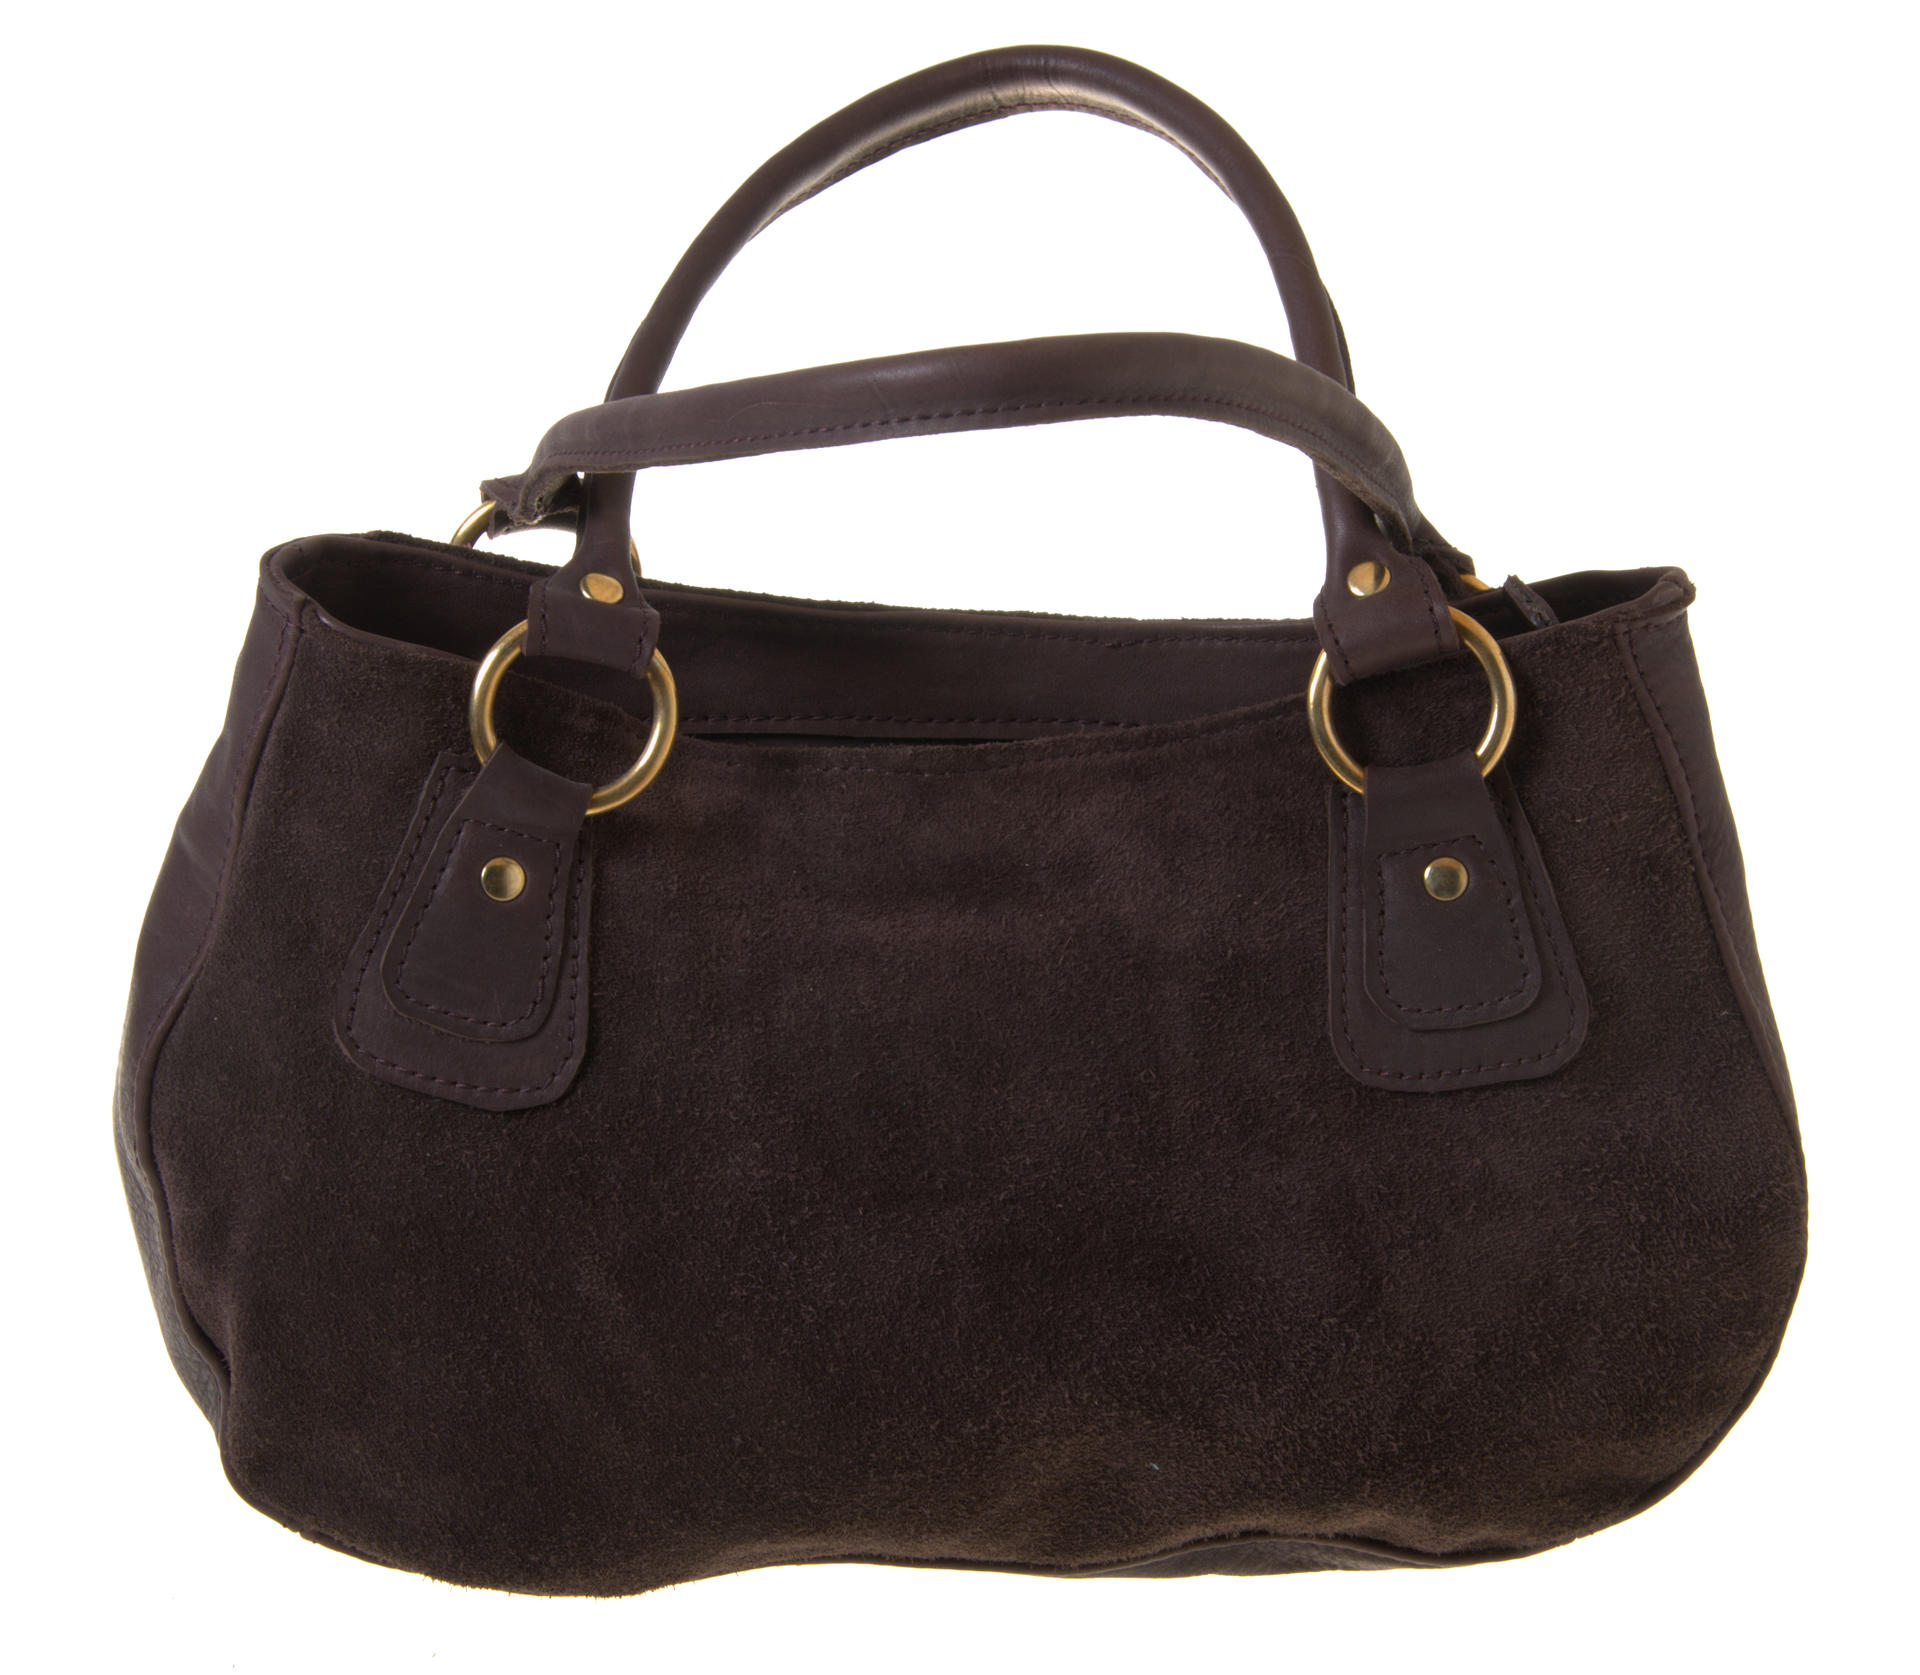 fida zipper closed bag in chocolate leather and suede